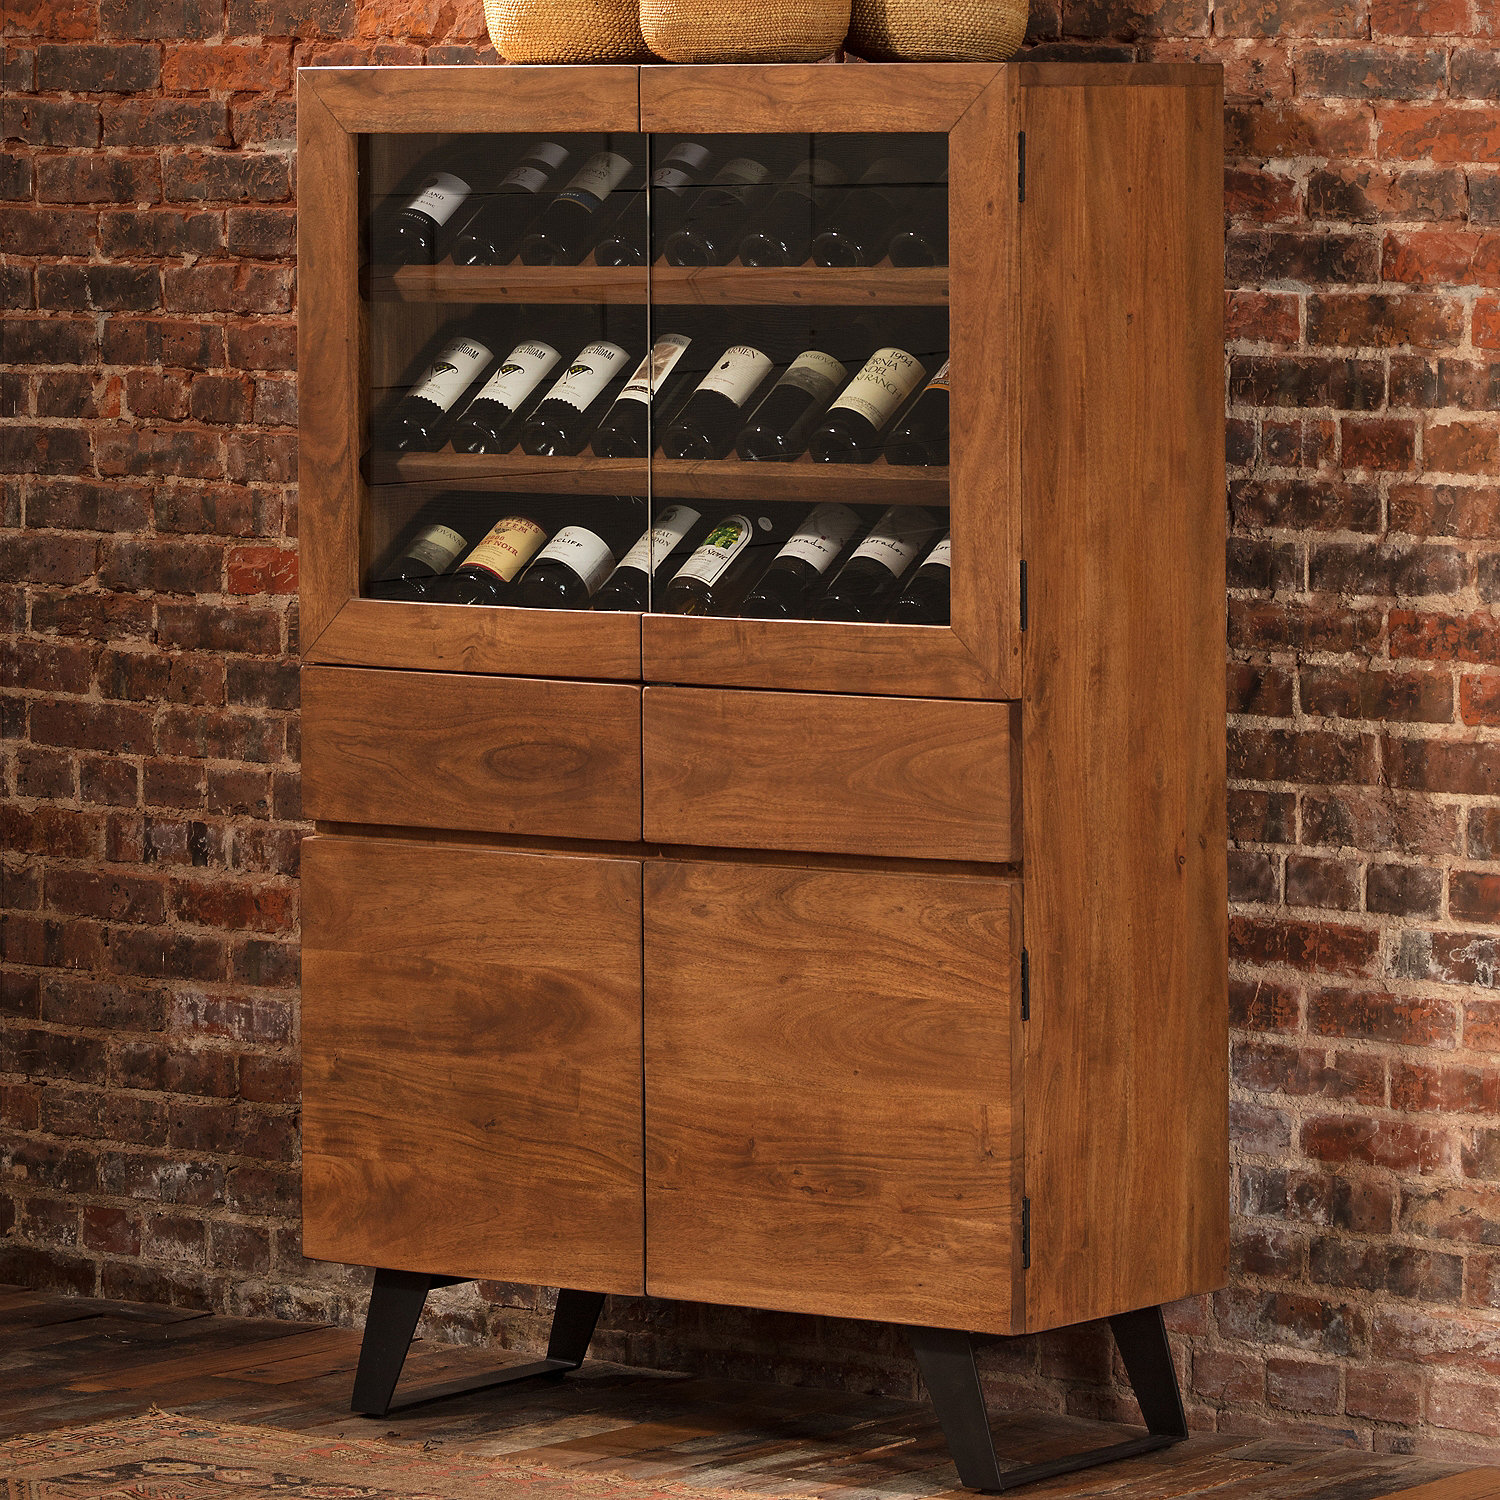 storage full iwa cabinet wine accessories cooling cabinets category